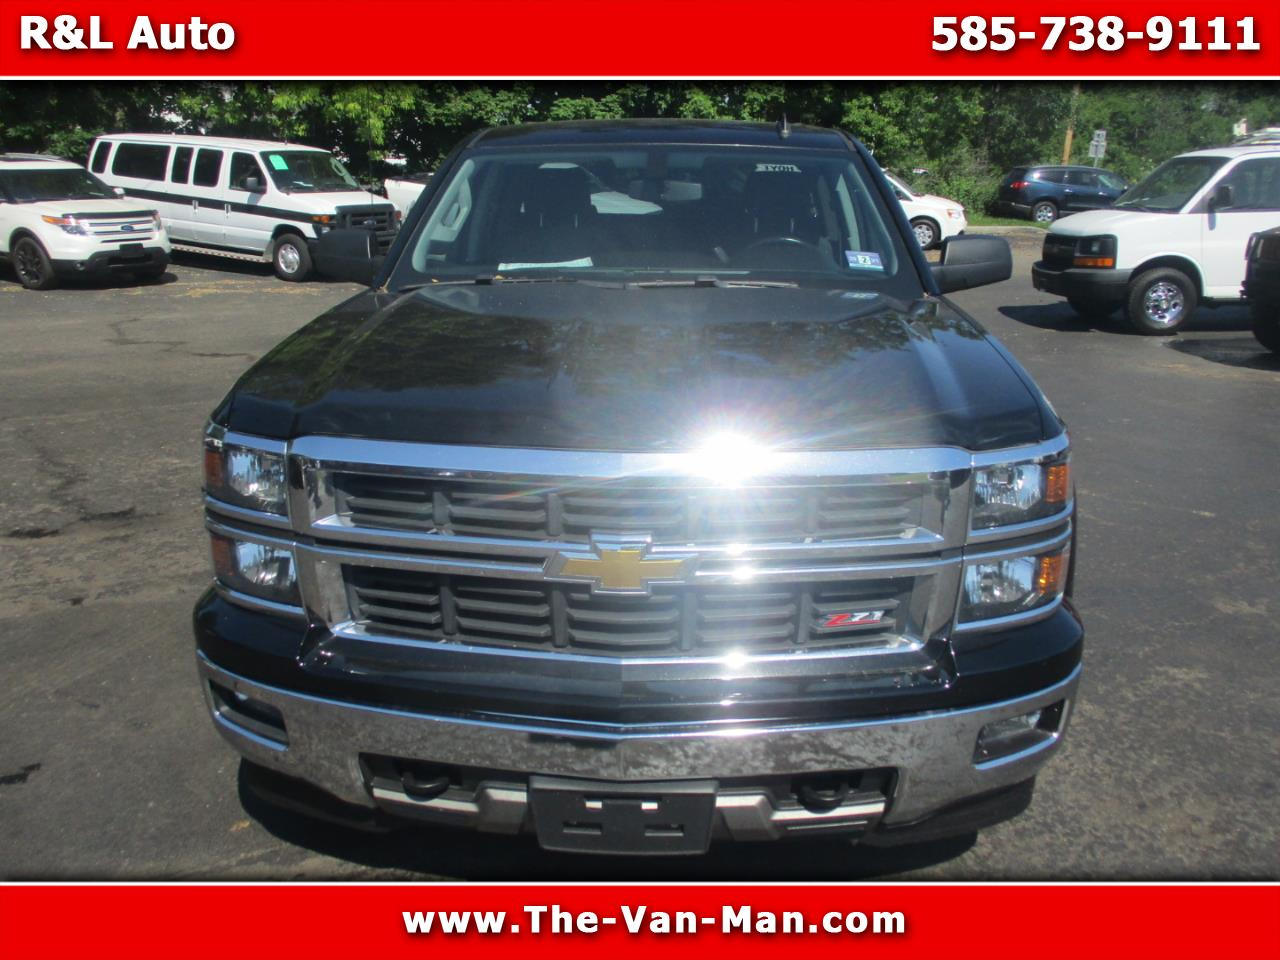 The Van Man Spencerport NY | New & Used Cars Trucks Sales & Service